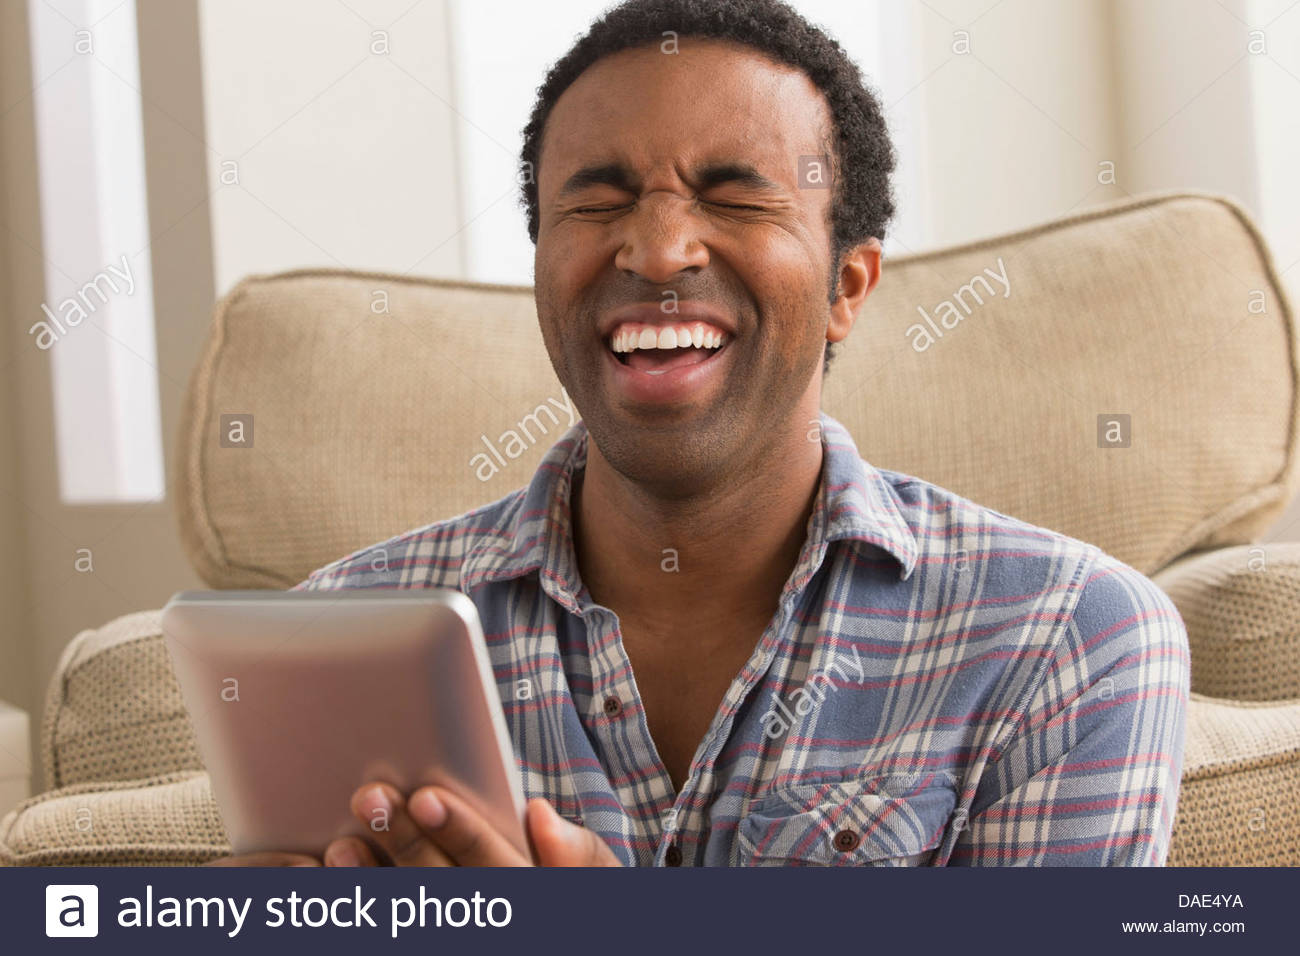 Young man with electronic book, laughing - Stock Image